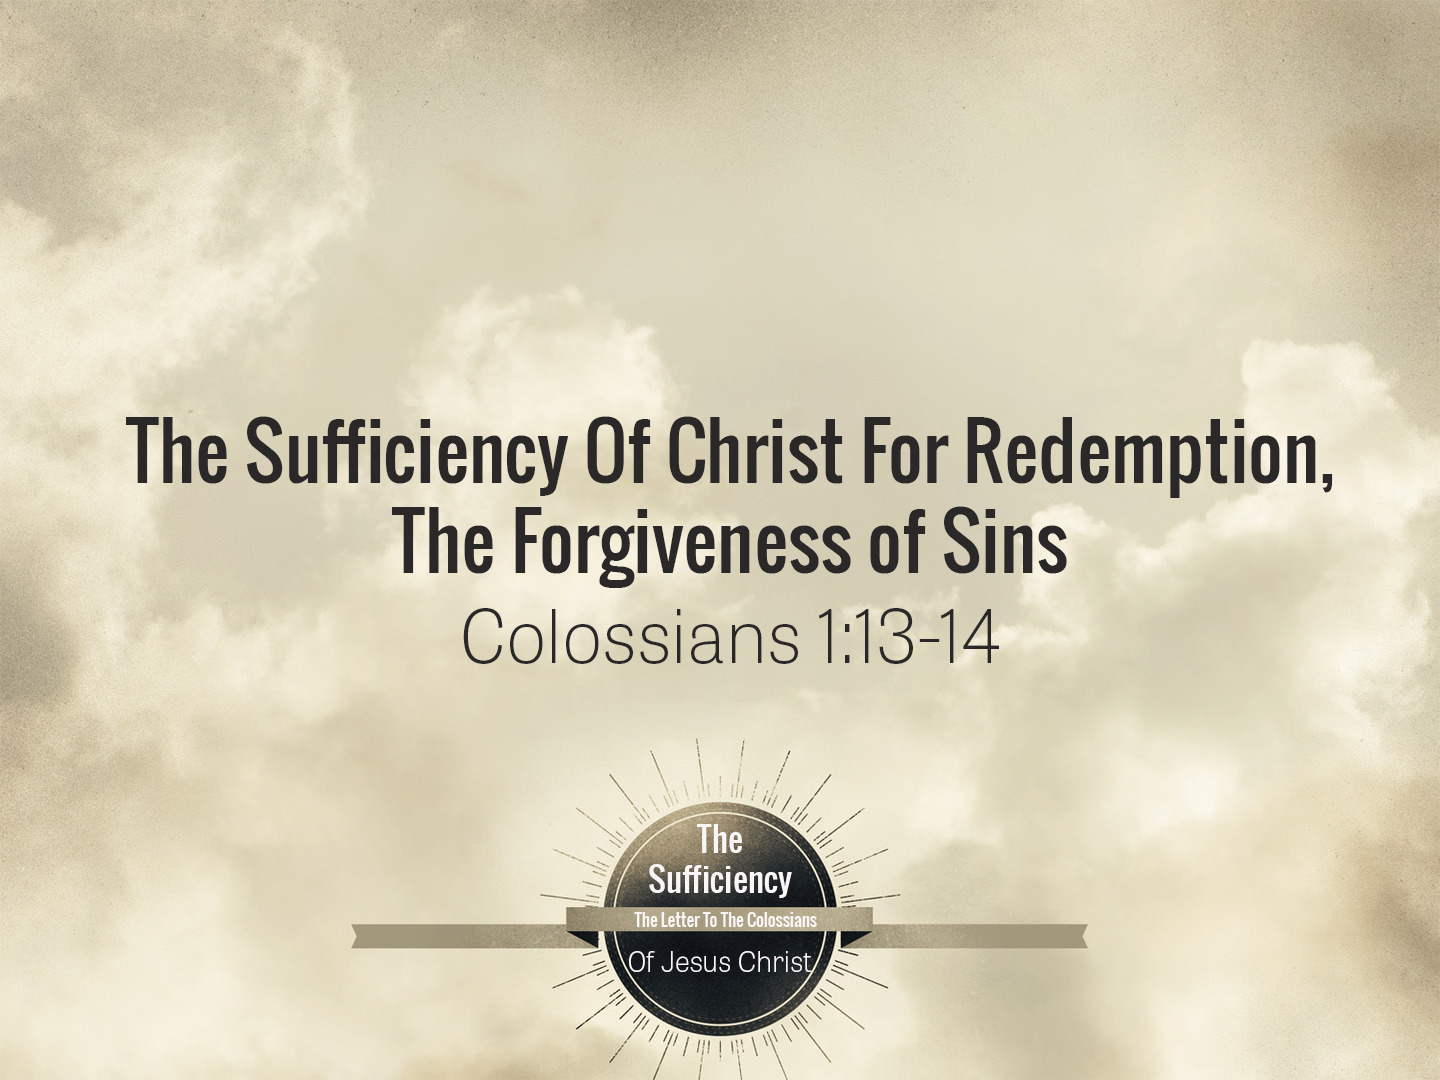 Colossians 1v13-14 The Sufficiency Of Christ For Redemption The Forgiveness Of Sins